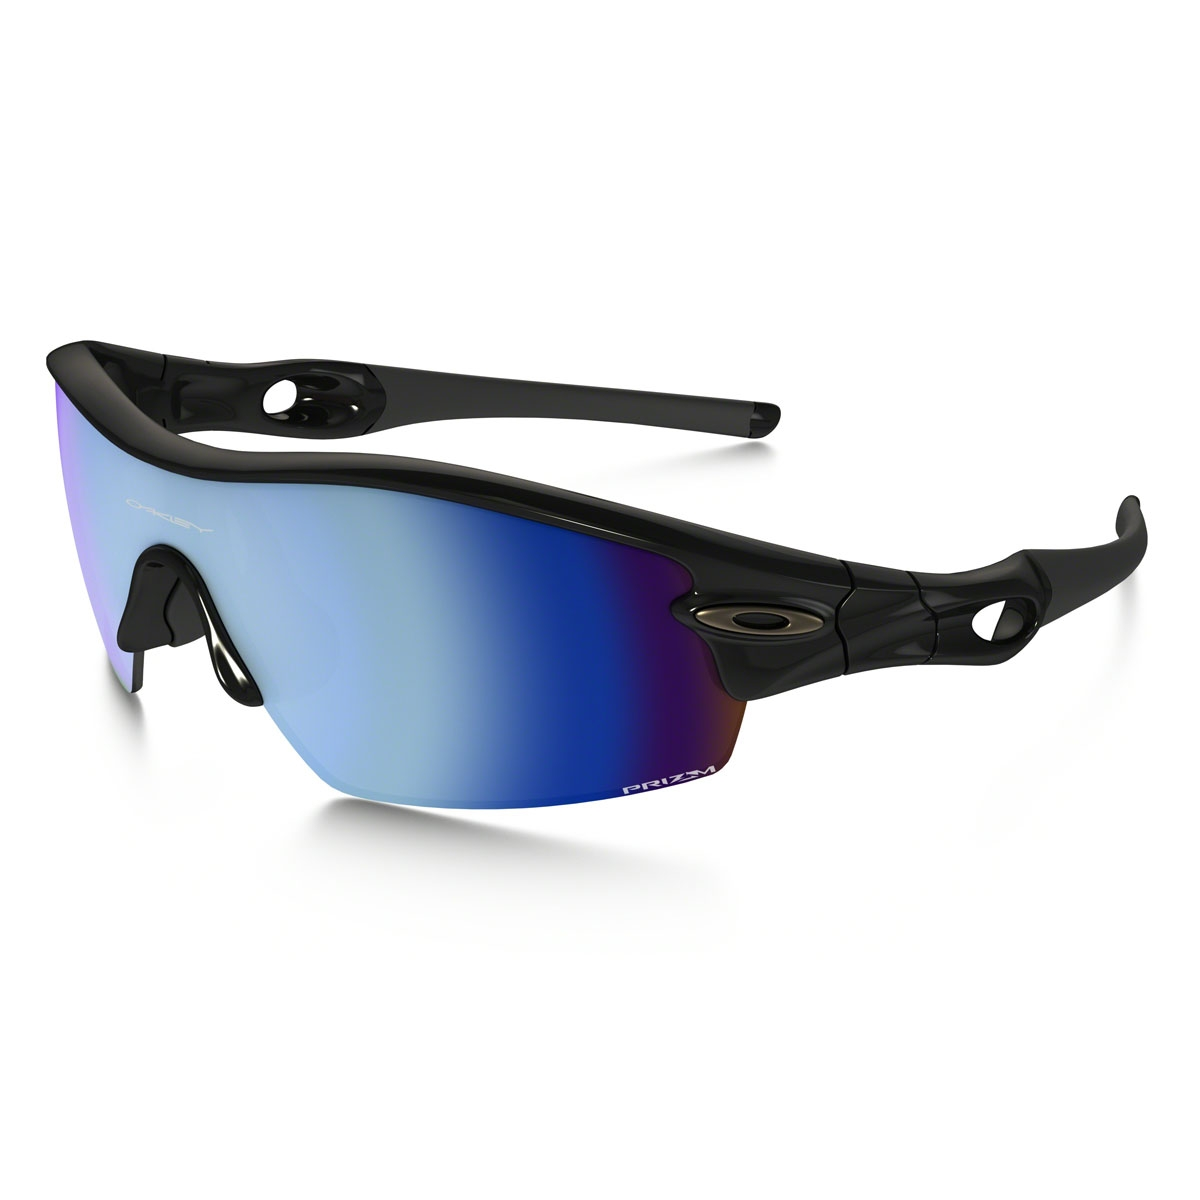 cec21552617 Image of Oakley Radar Pitch Sunglasses - Polished Black   Prizm Deep Water  Polarized